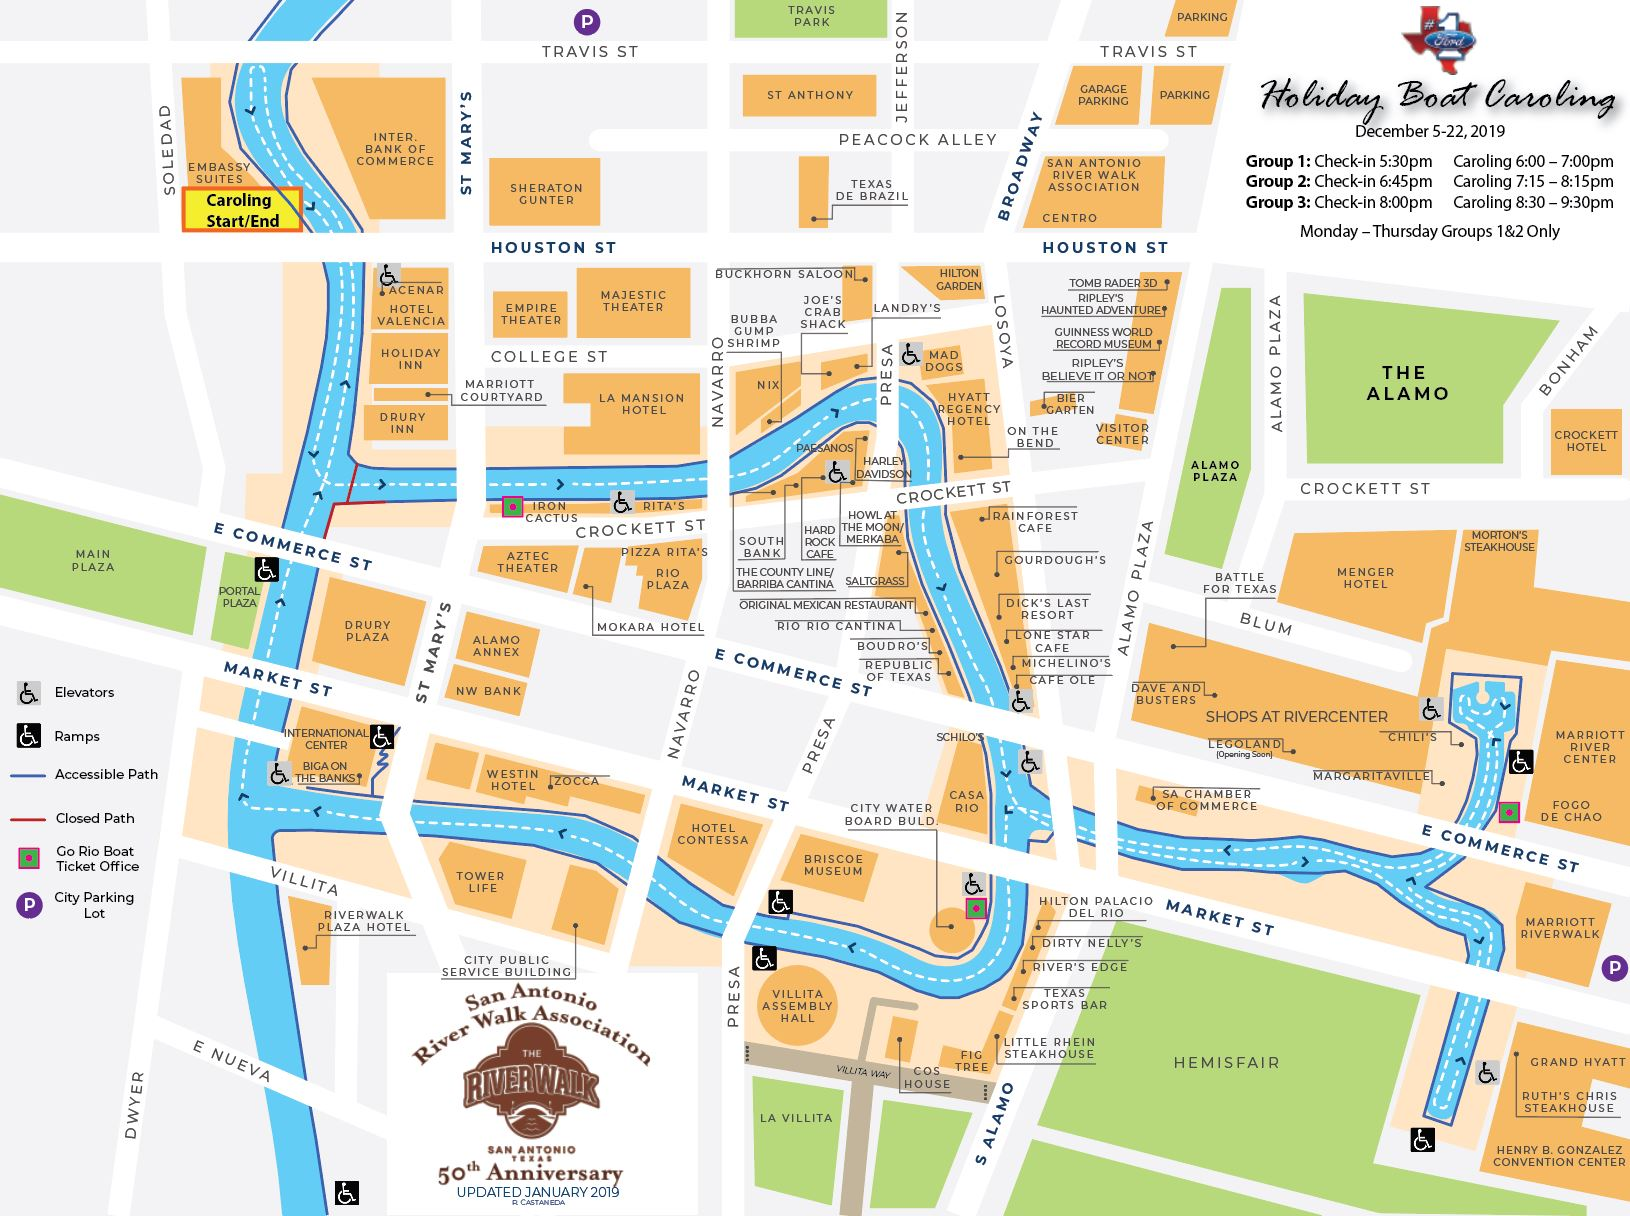 Ford Holiday Boat Caroling on san antonio restaurant map, san antonio downtown hotels map, phoenix convention center hotels map, city of san antonio map, houston hotels map, san antonio drury plaza hotel, san antonio medical center map, san antonio river map, san antonio parking map, grand hyatt san antonio map, corpus christi hotels map, alamo san antonio map, san antonio airport map, san antonio visitors map, colorado hotels map, port aransas hotels map, alamodome san antonio map, san antonio tx at night, san antonio riverwalk extension map, san antonio bay aerial map,